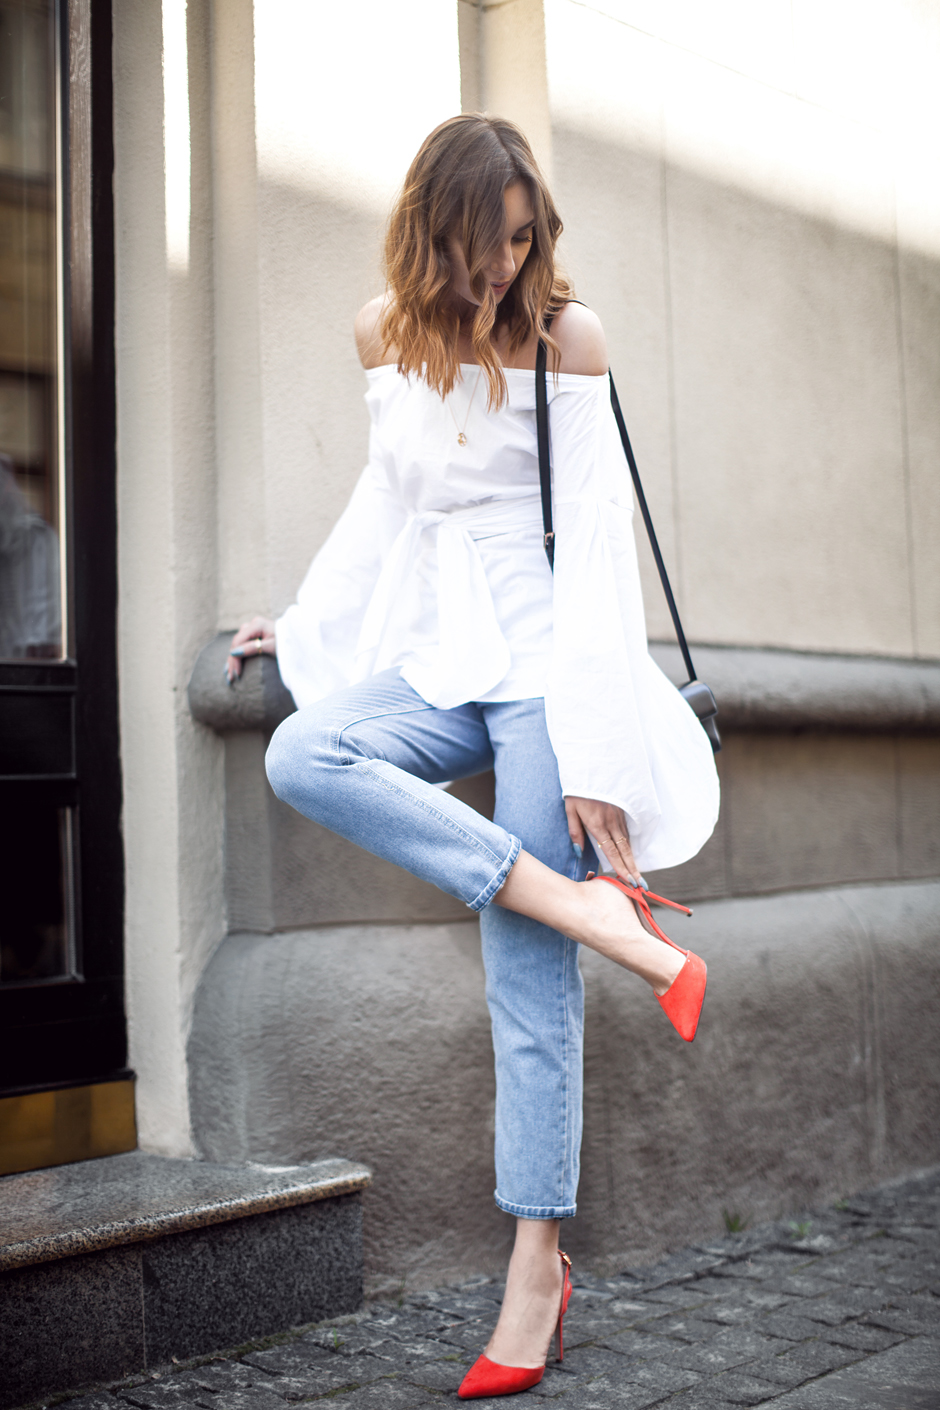 red-slingback-pumps-heels-outfit-stret-style